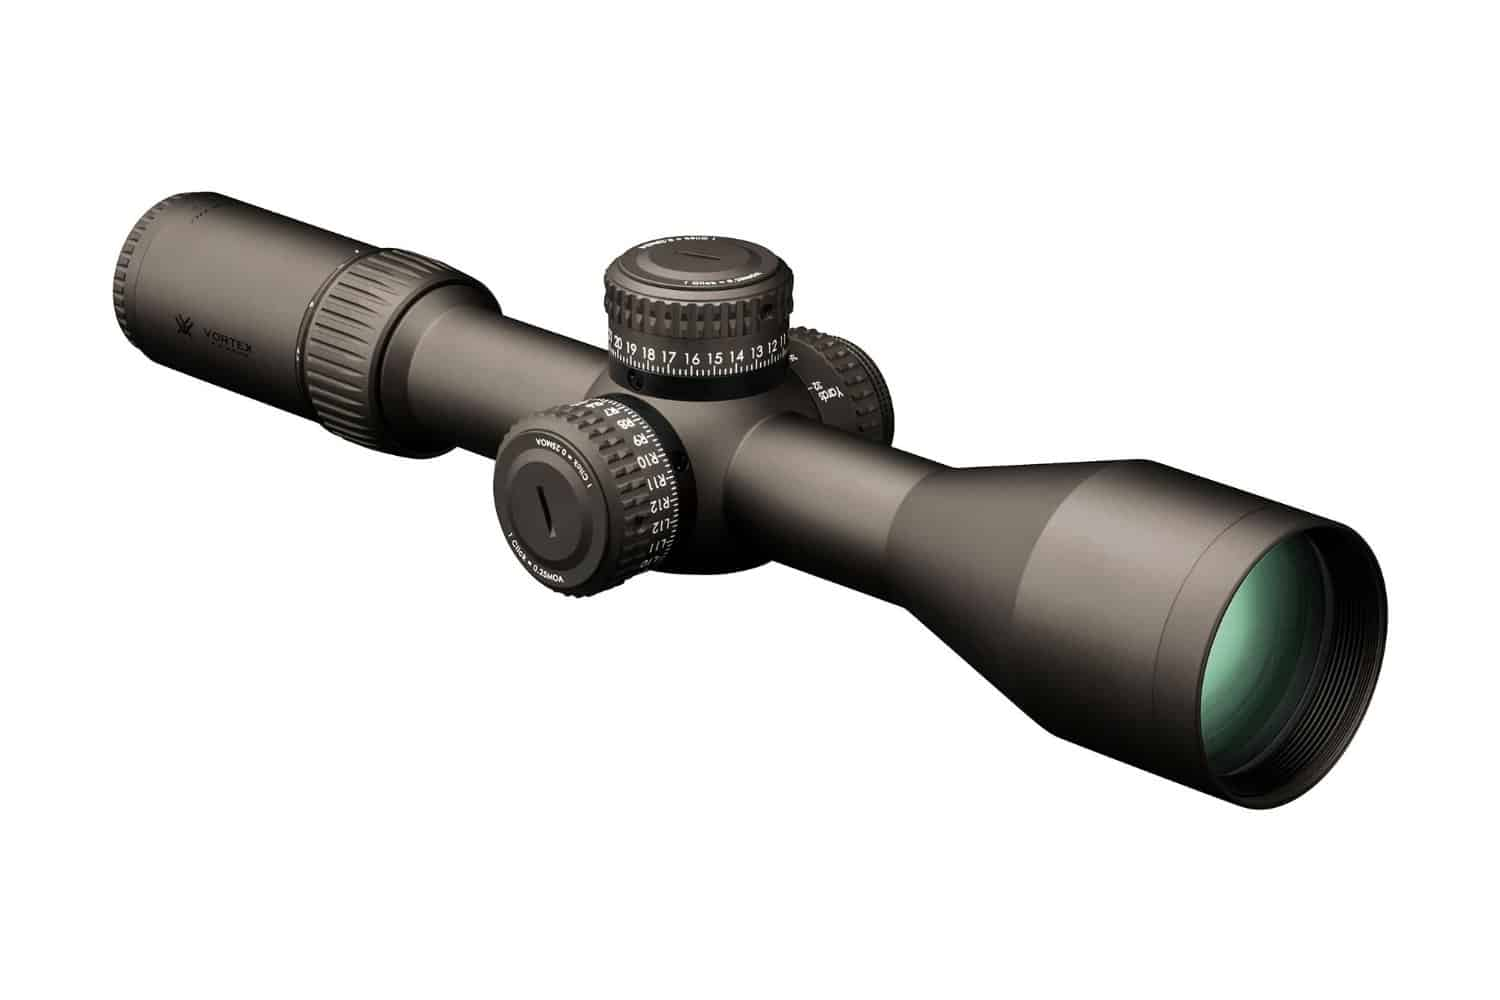 Vortex Razor HD Gen II 4.5-27x56mm Hunting Scope